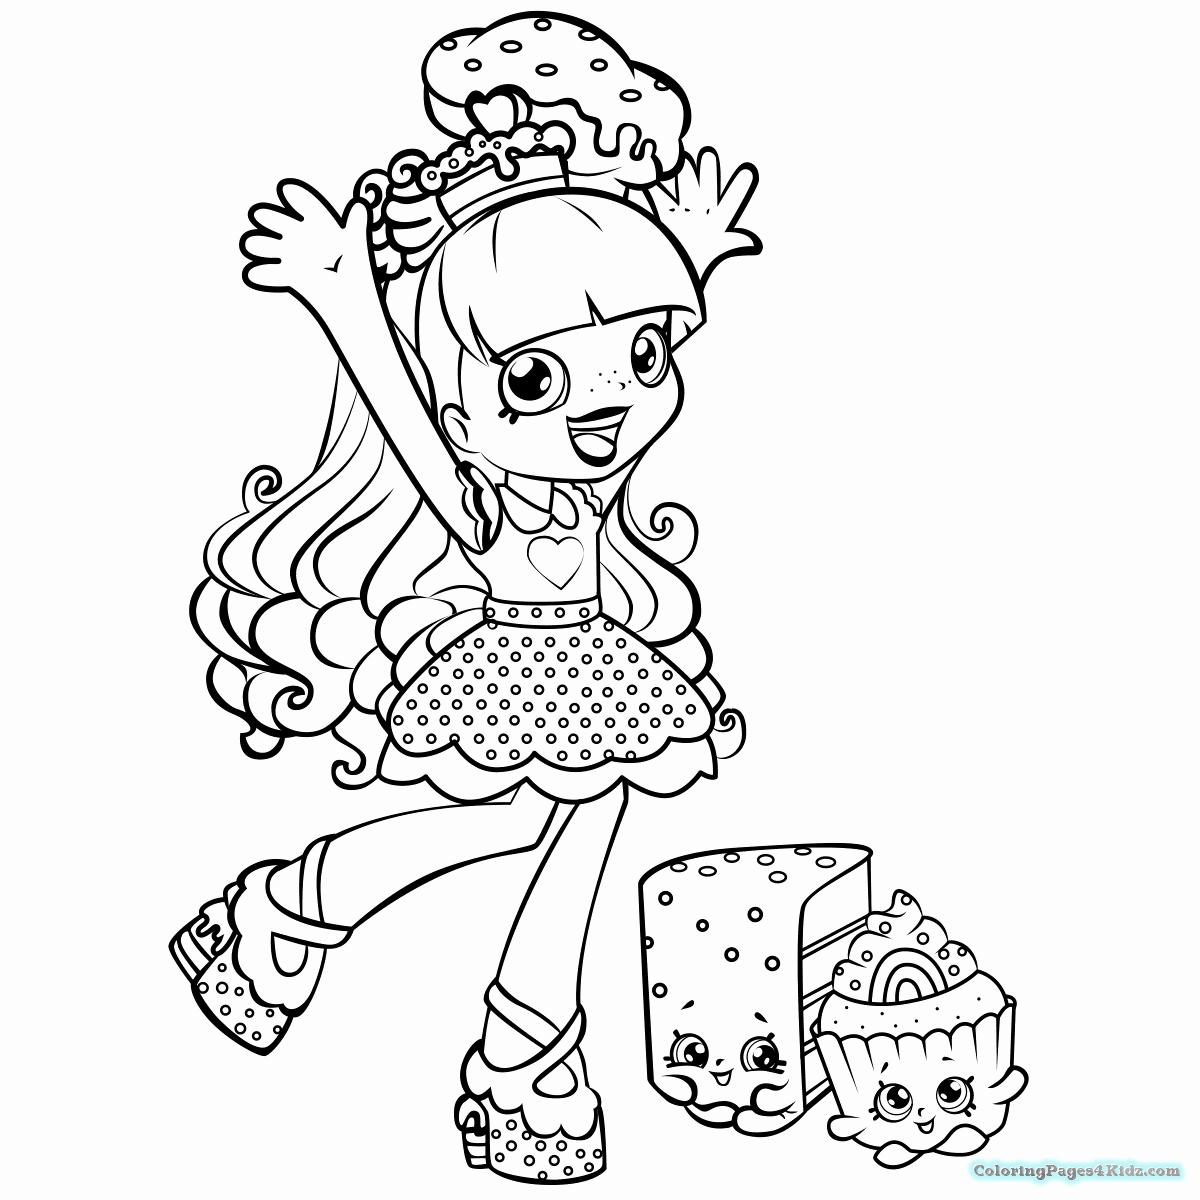 1200x1200 Shopkins Characters Coloring Pages Pictures Top Free Printable